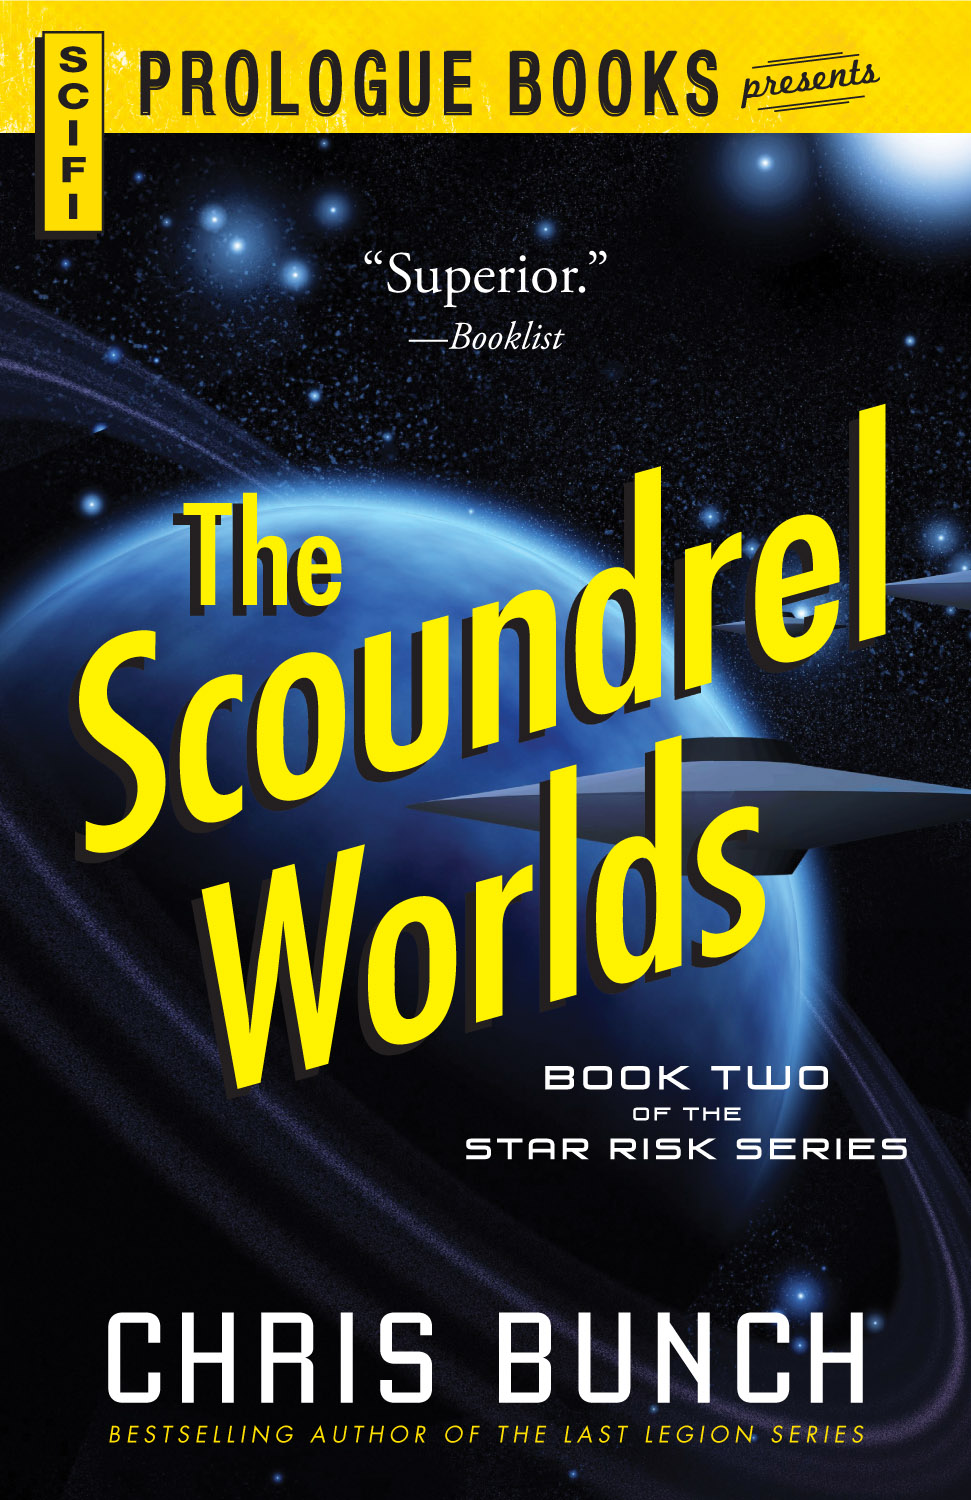 The Scoundrel Worlds: Book Two of the Star Risk Series By: Chris Bunch